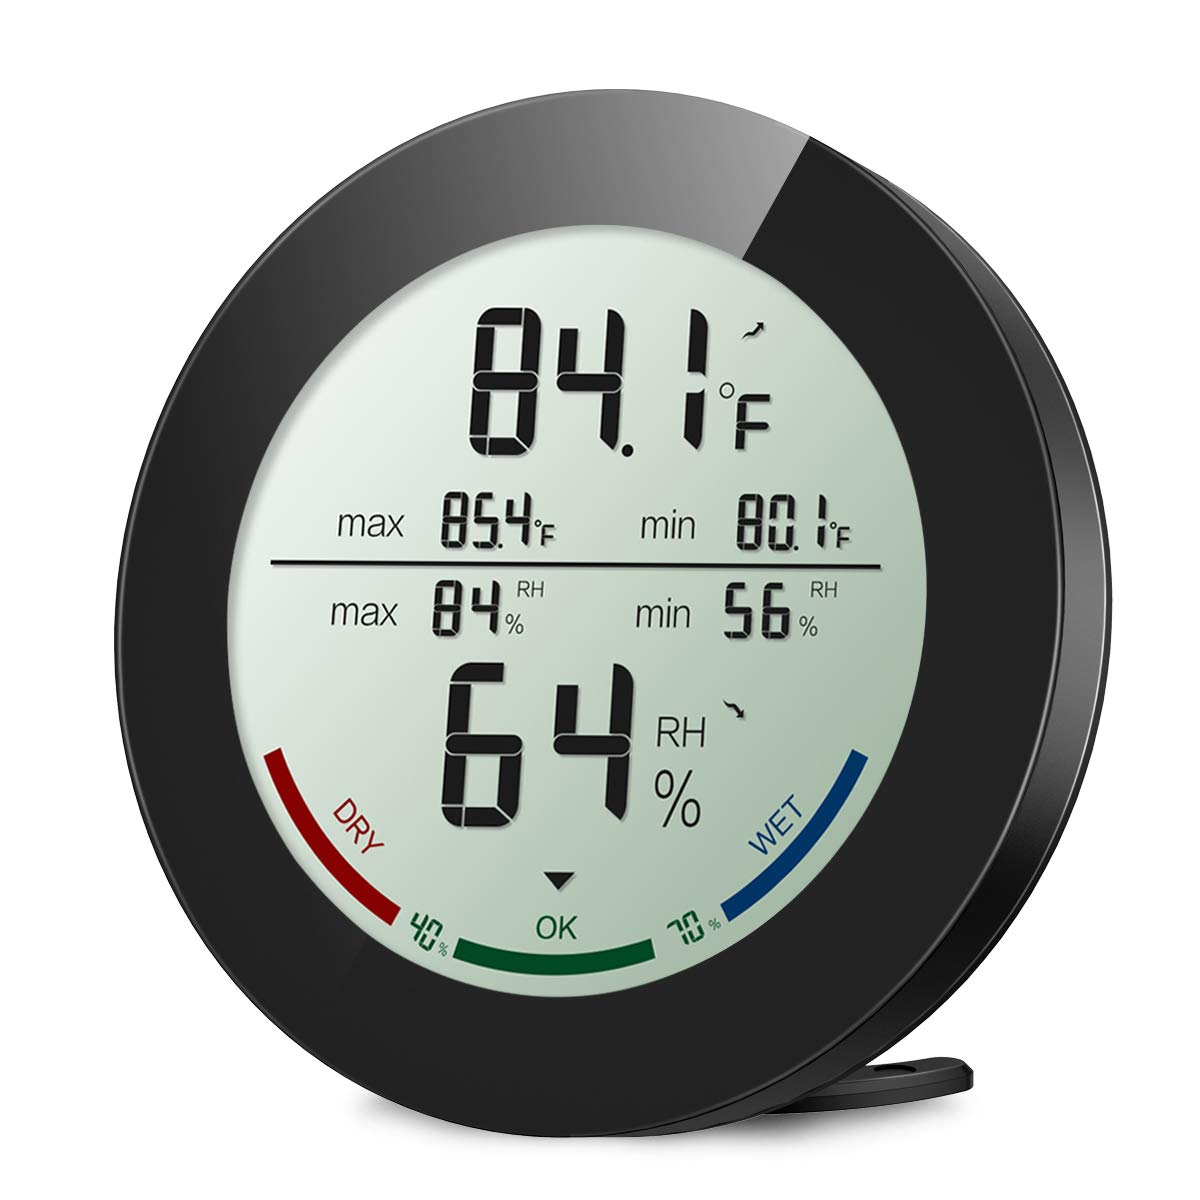 Hygrometer Thermometer for Indoor Use Temperature Humidity Indoor 2 Pack 2.5 Inches LCD Display ℃ and ℉ Switch ORIA Digital Humidity Thermometer